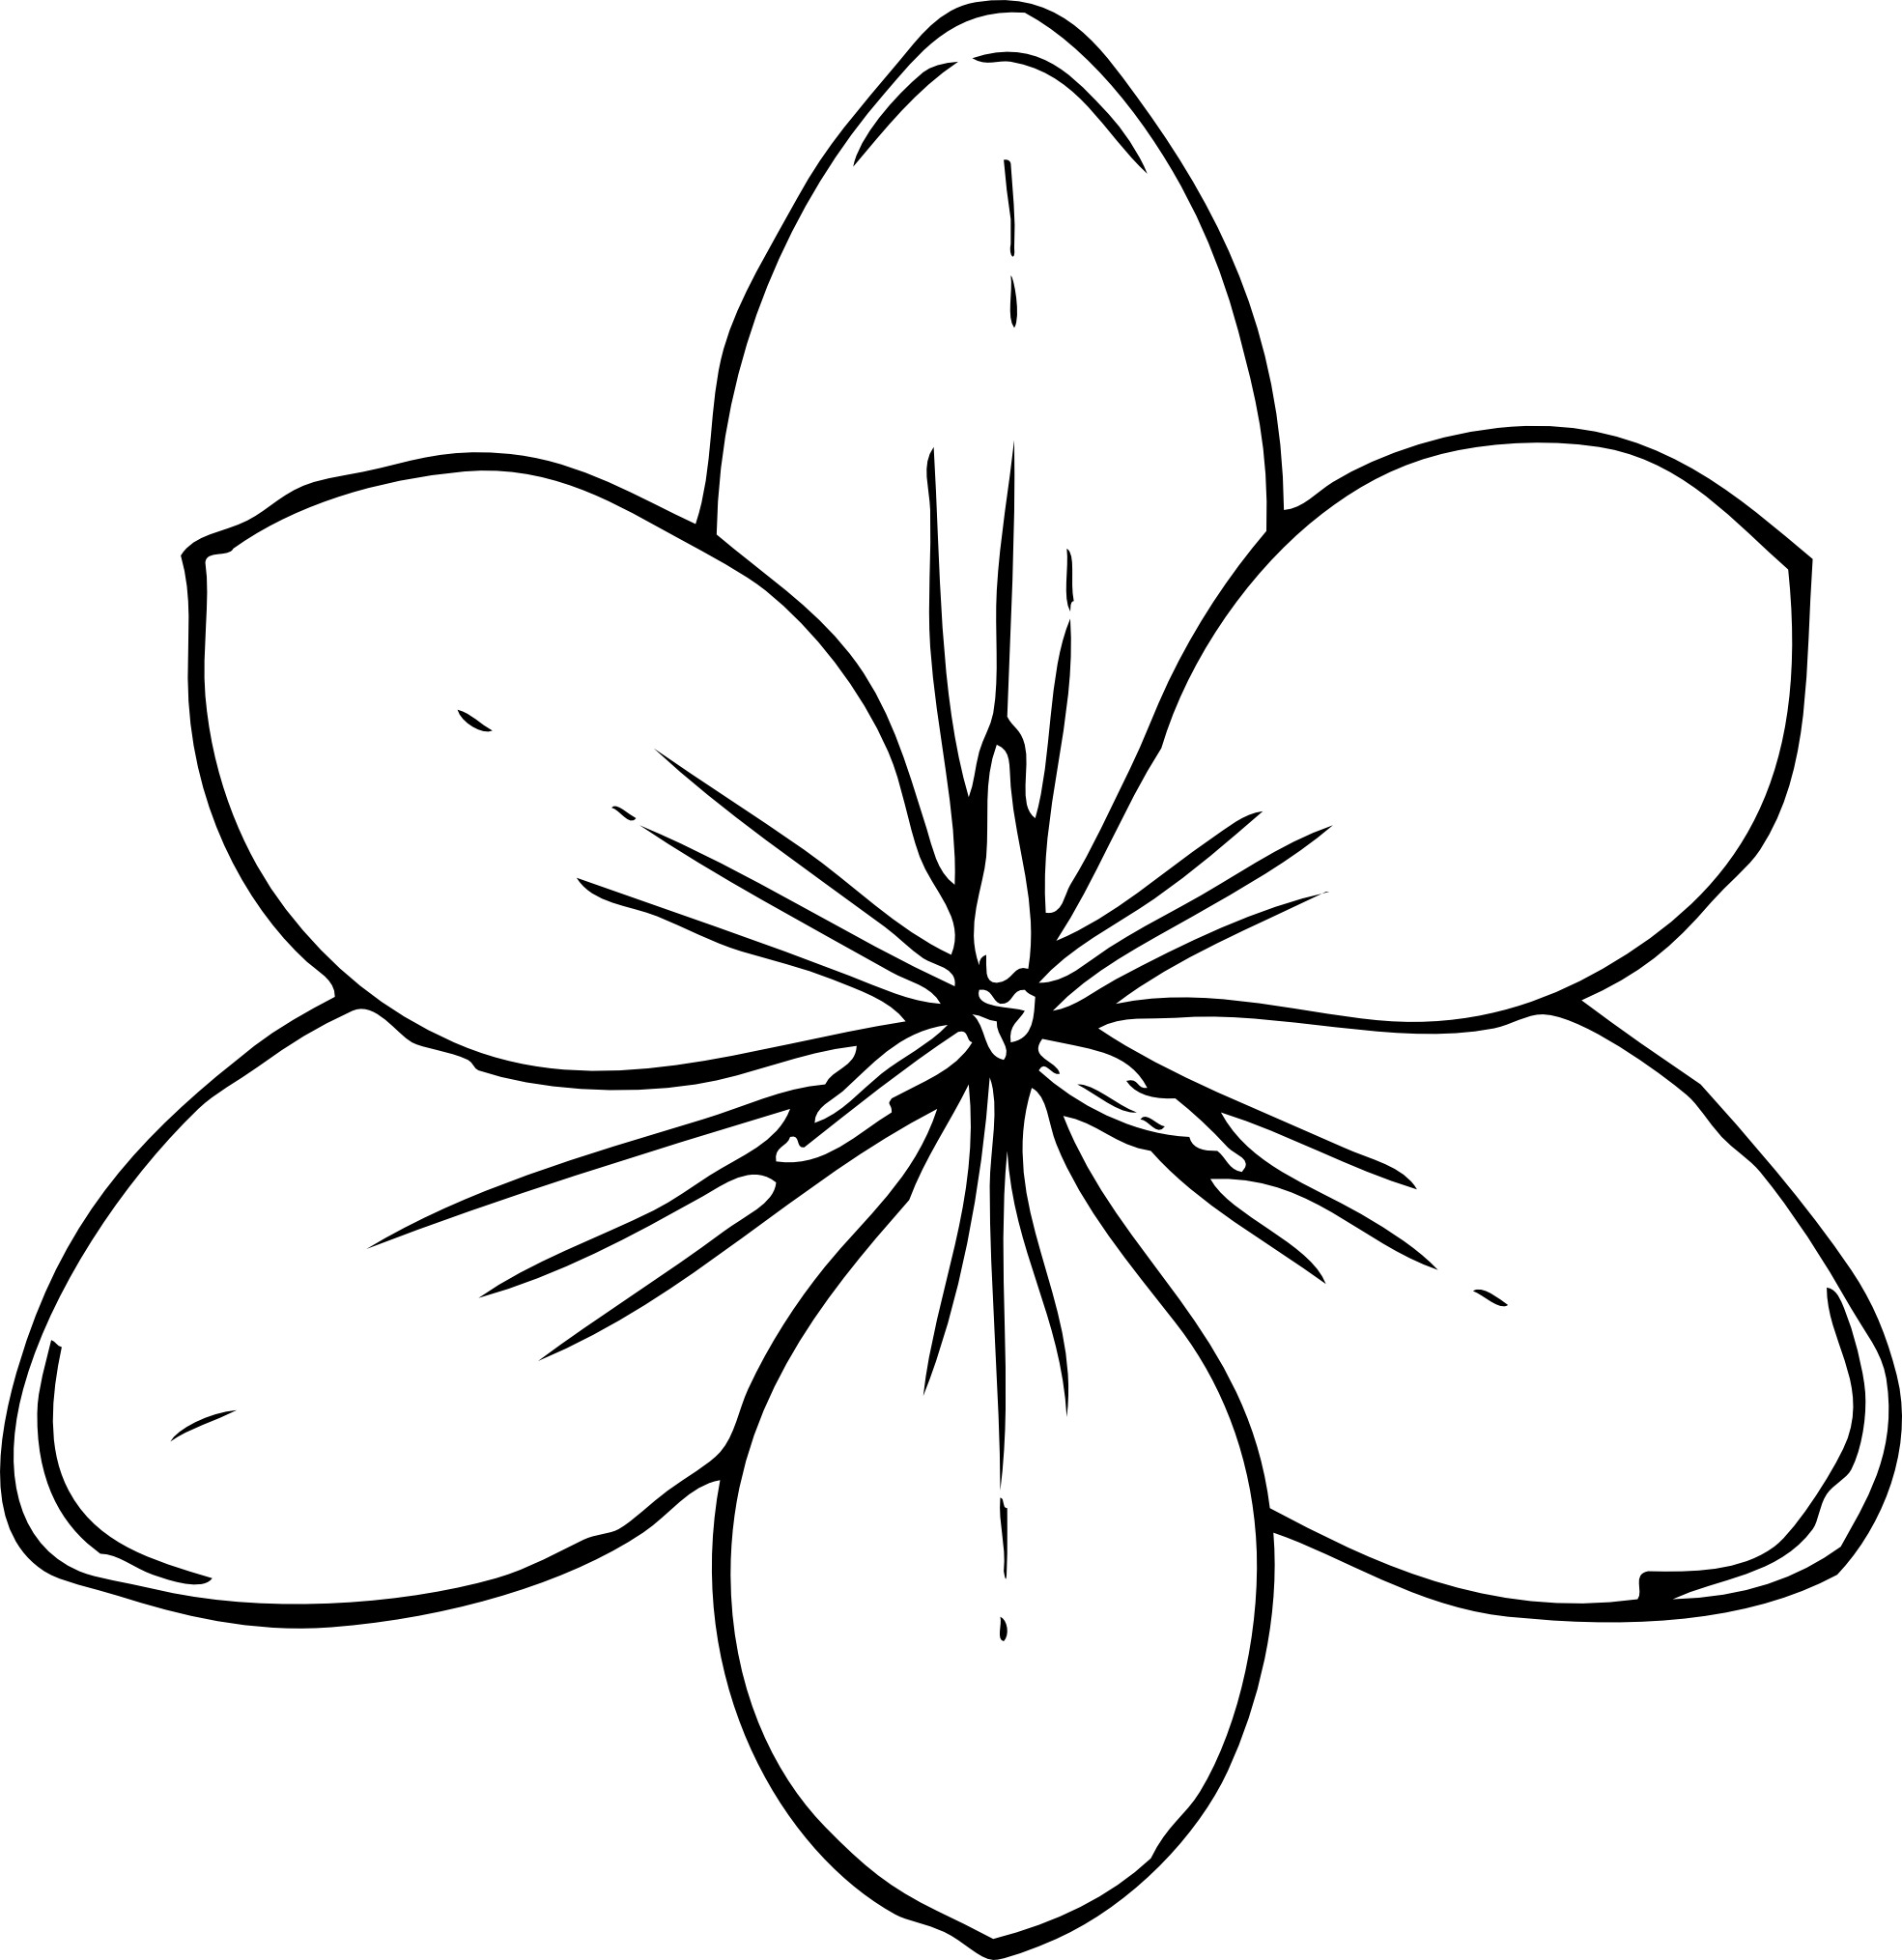 Line Art Flowers : Flower line art clipart best